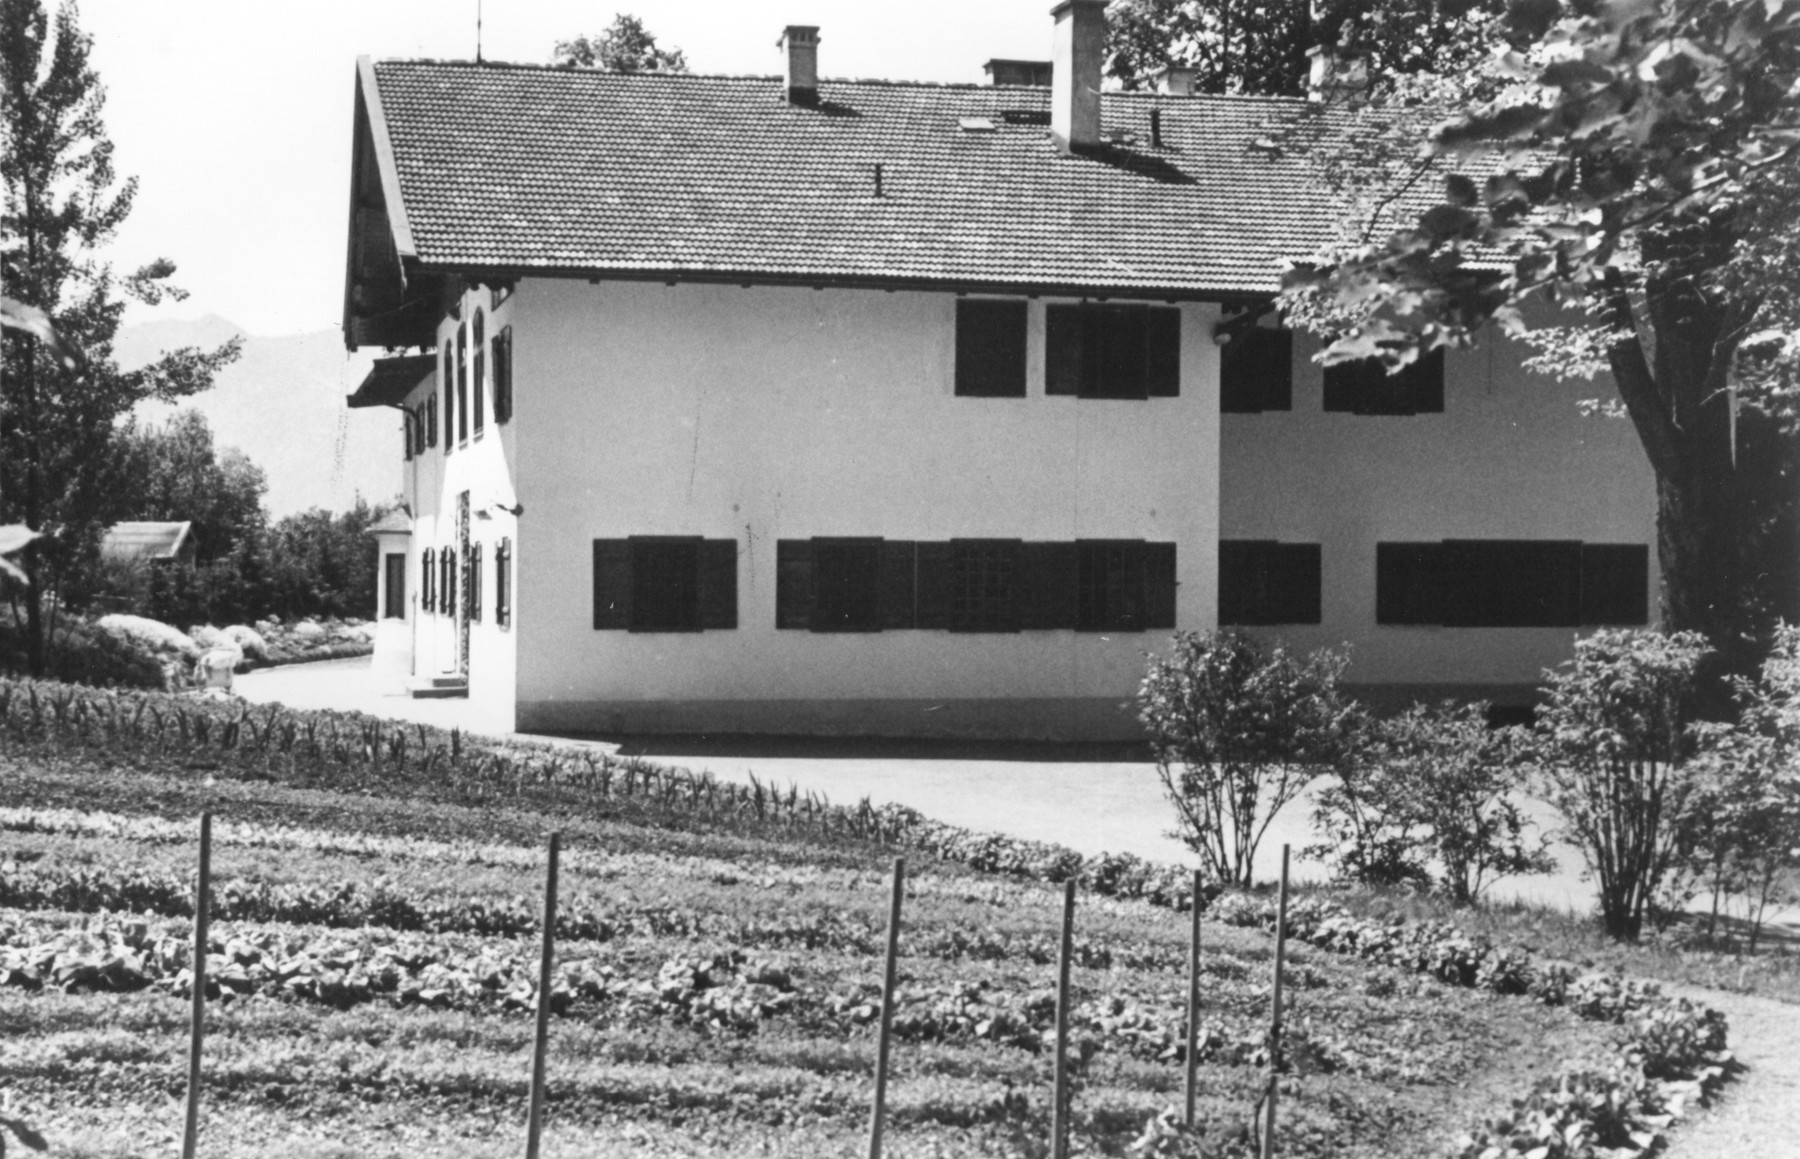 View of the Himmler home in Gmund am Tegernsee.